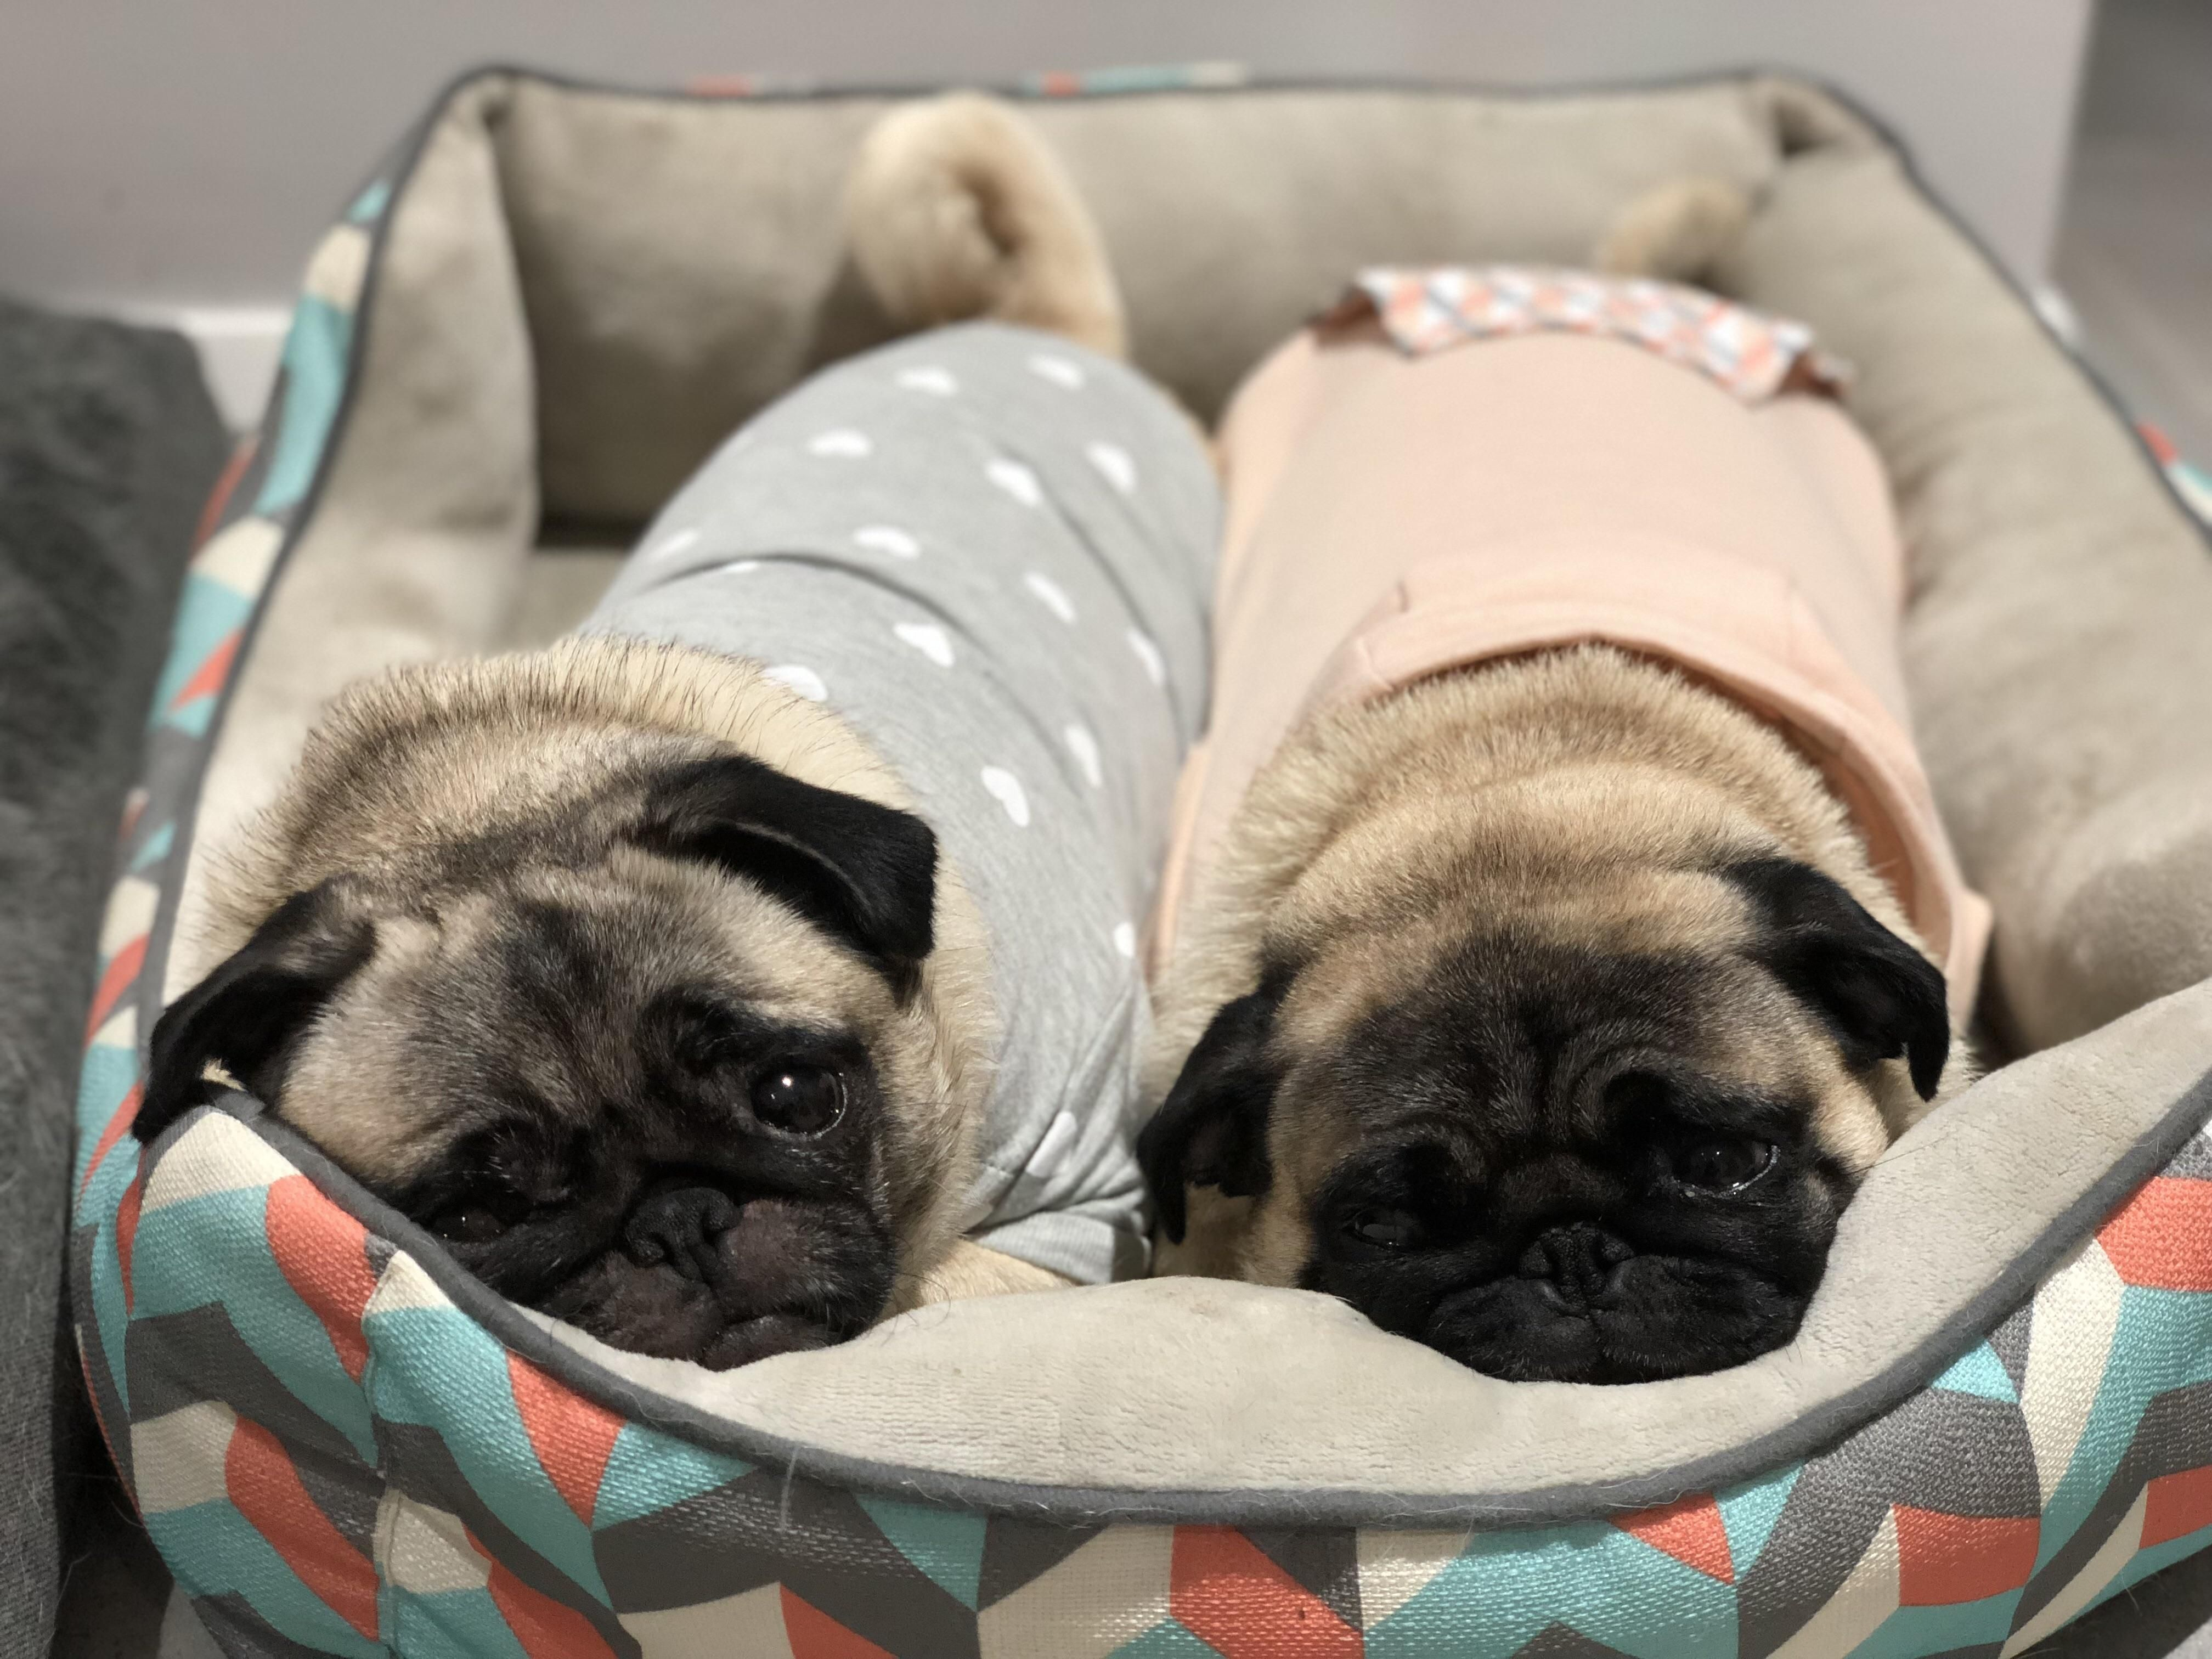 Two Peas In A Pod Https Ift Tt 2ghjzsh Pug Pugs Pugs Funny